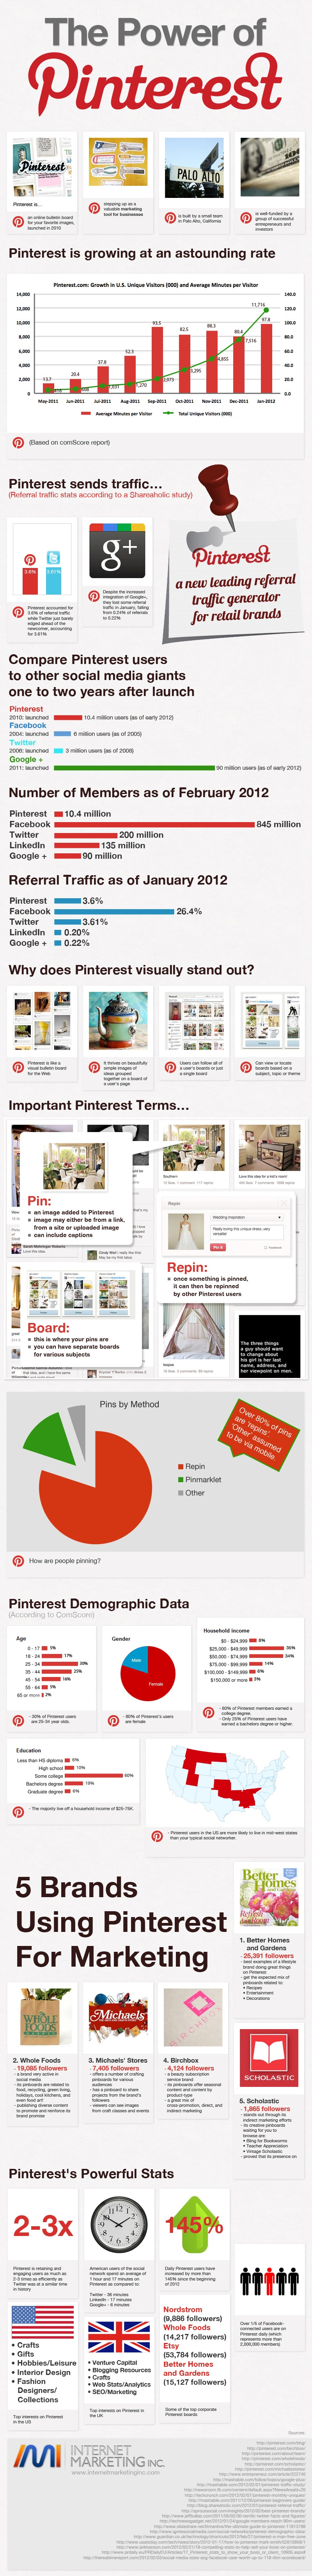 the-power-of-pinterest